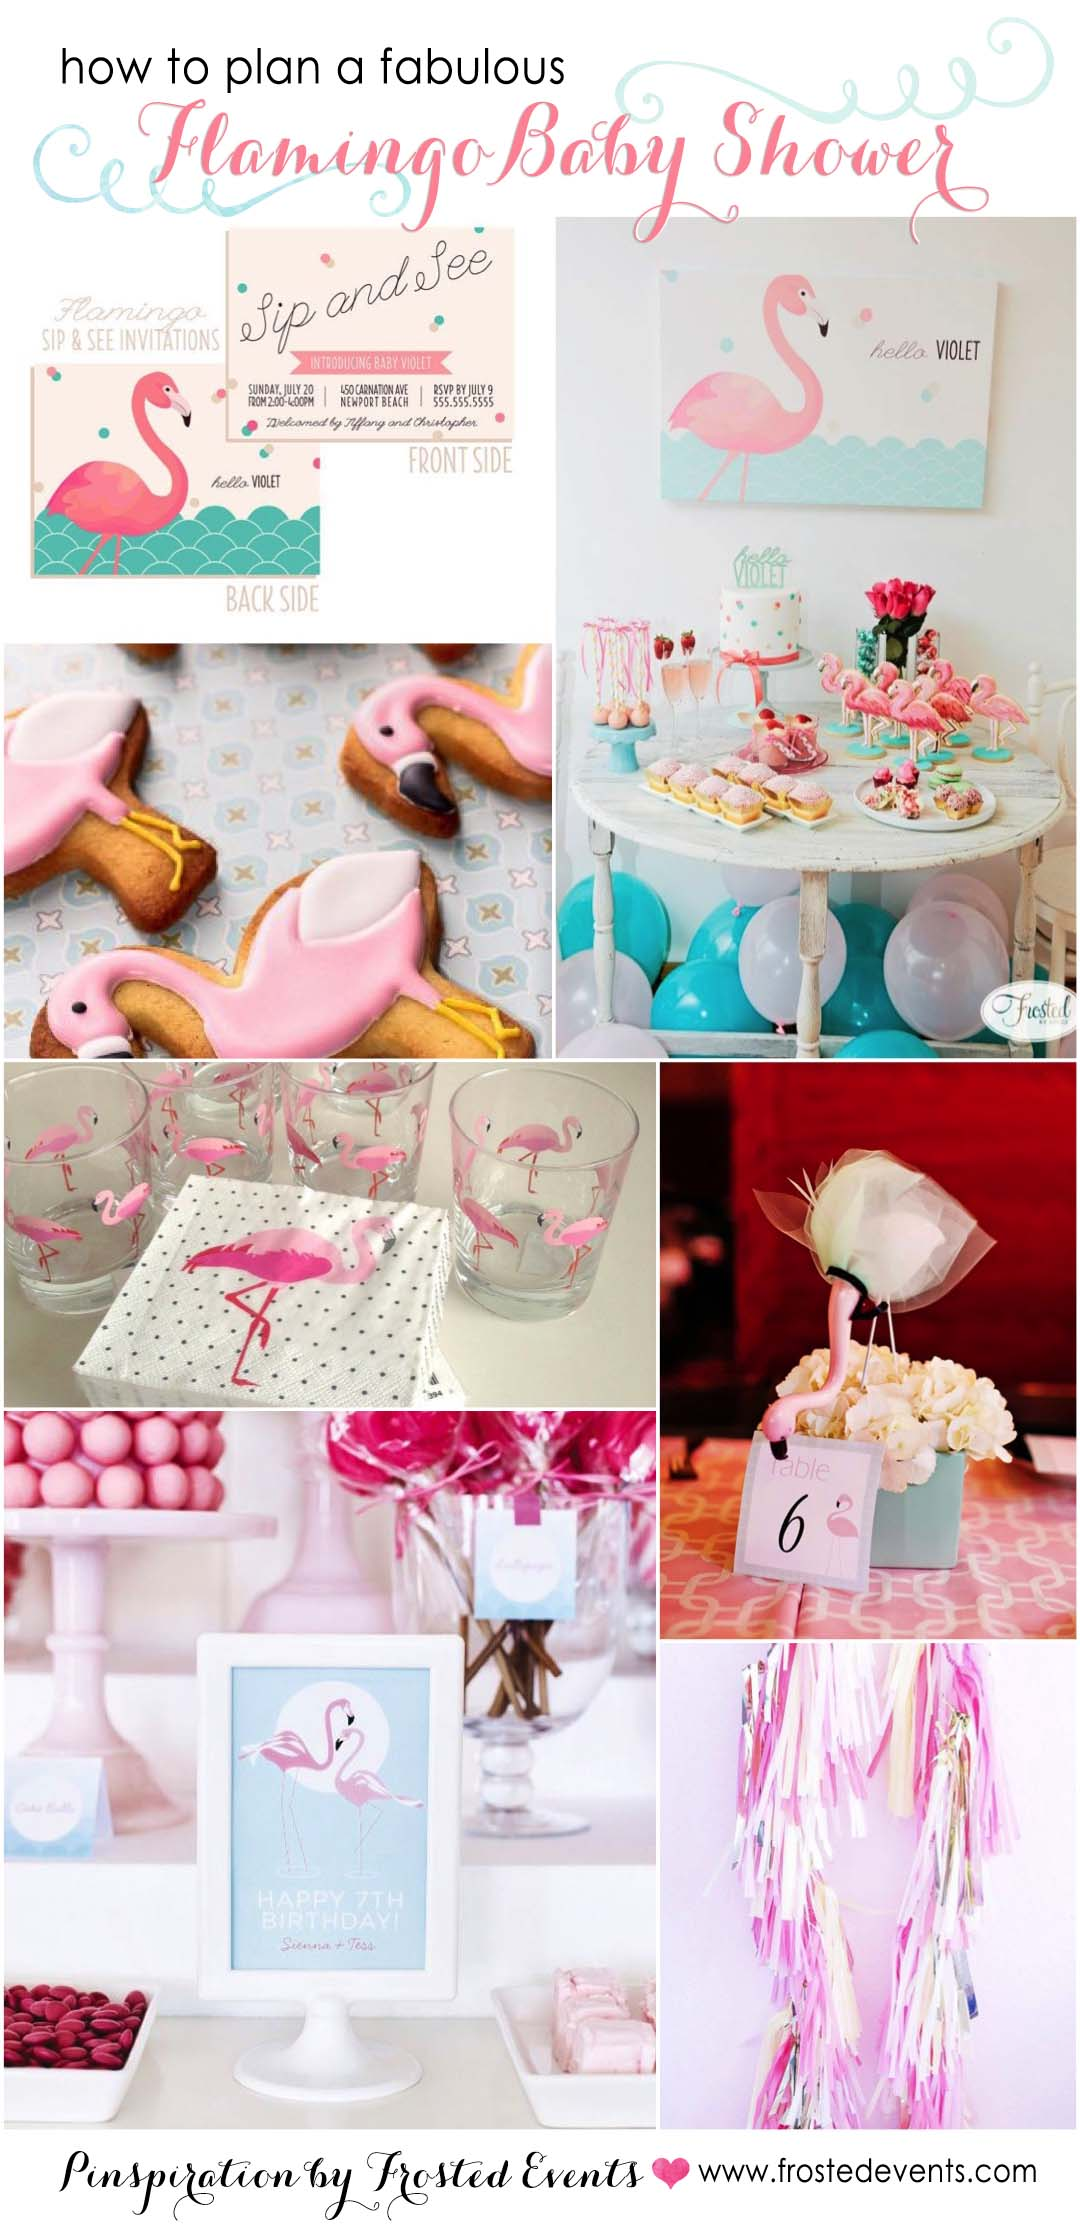 How To Throw A Fabulous Flamingo Theme Baby Shower| Party Themes